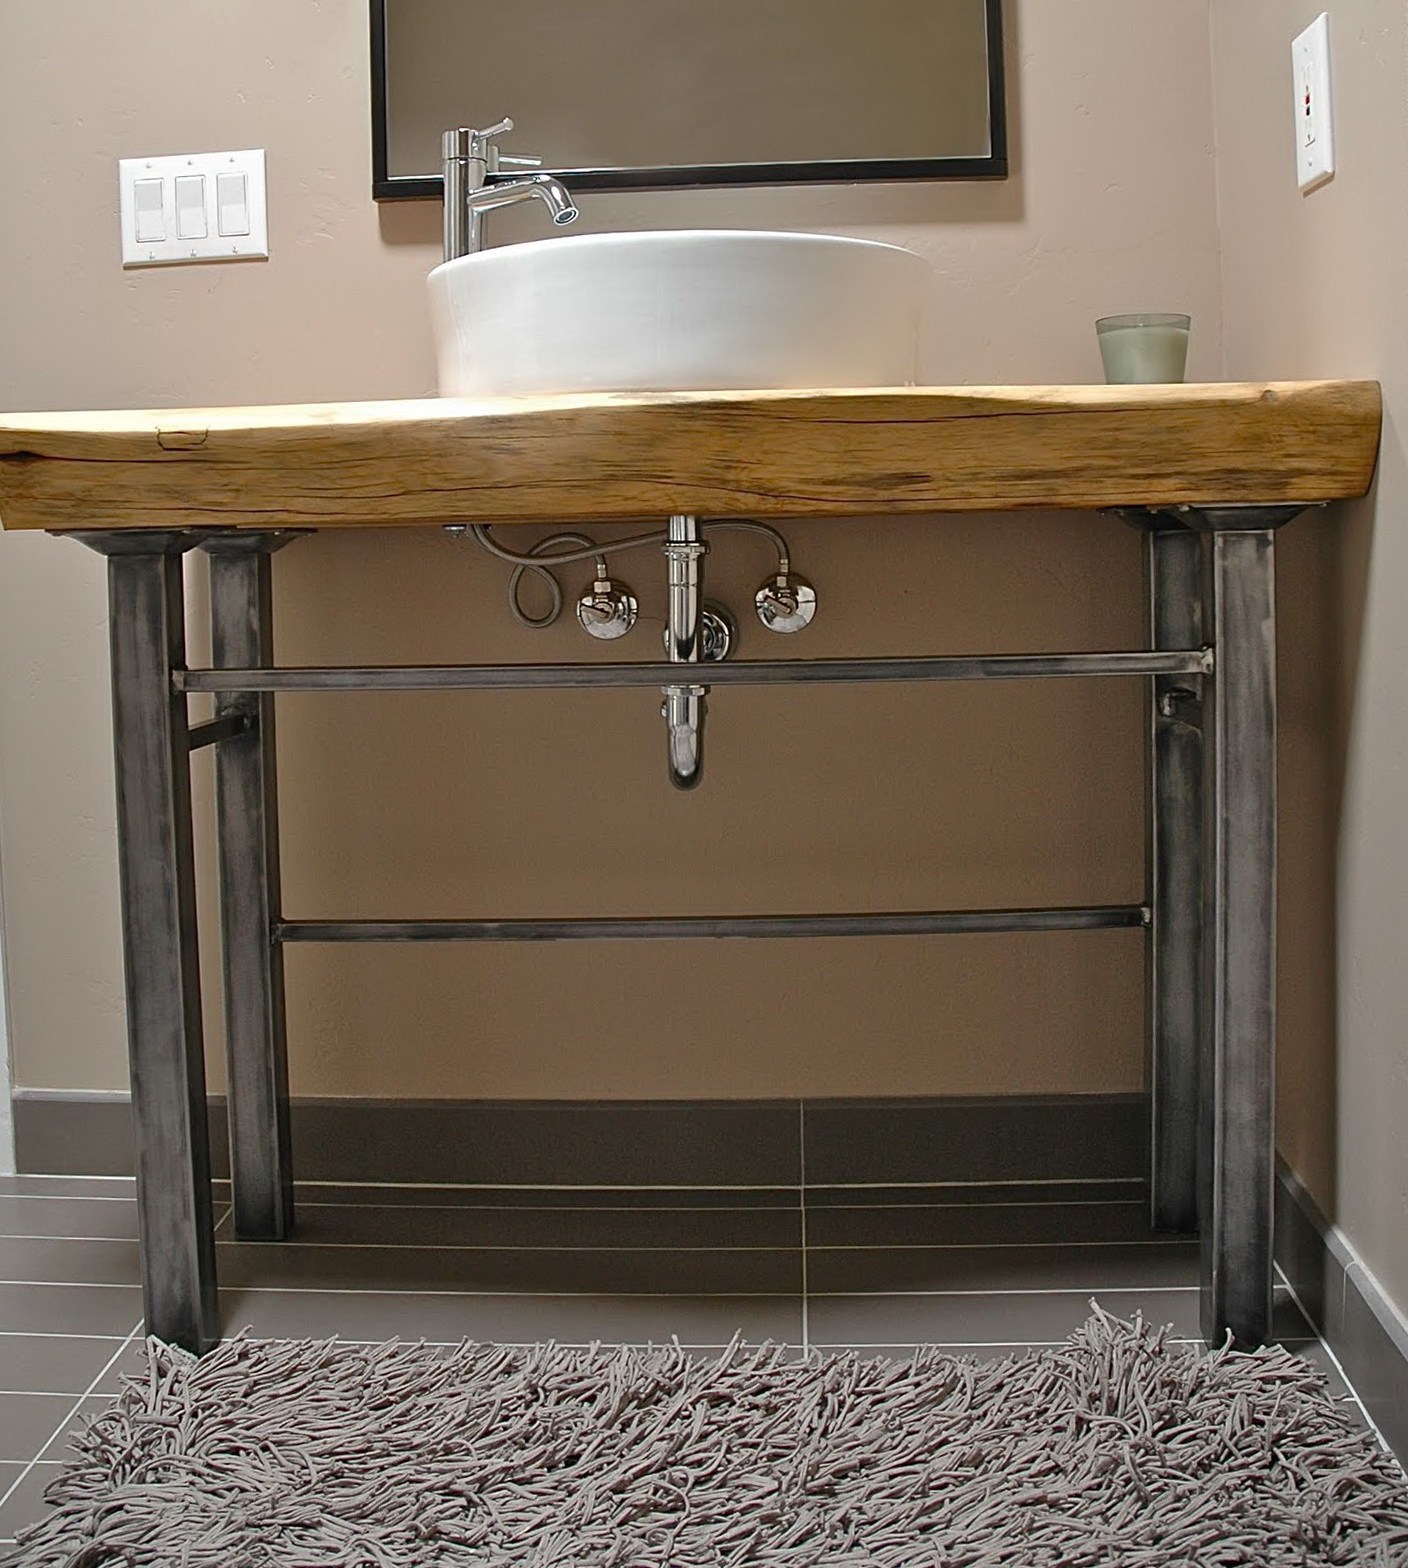 Metal Leg Bathroom Vanity. Bathroom Vanity With Metal Legs